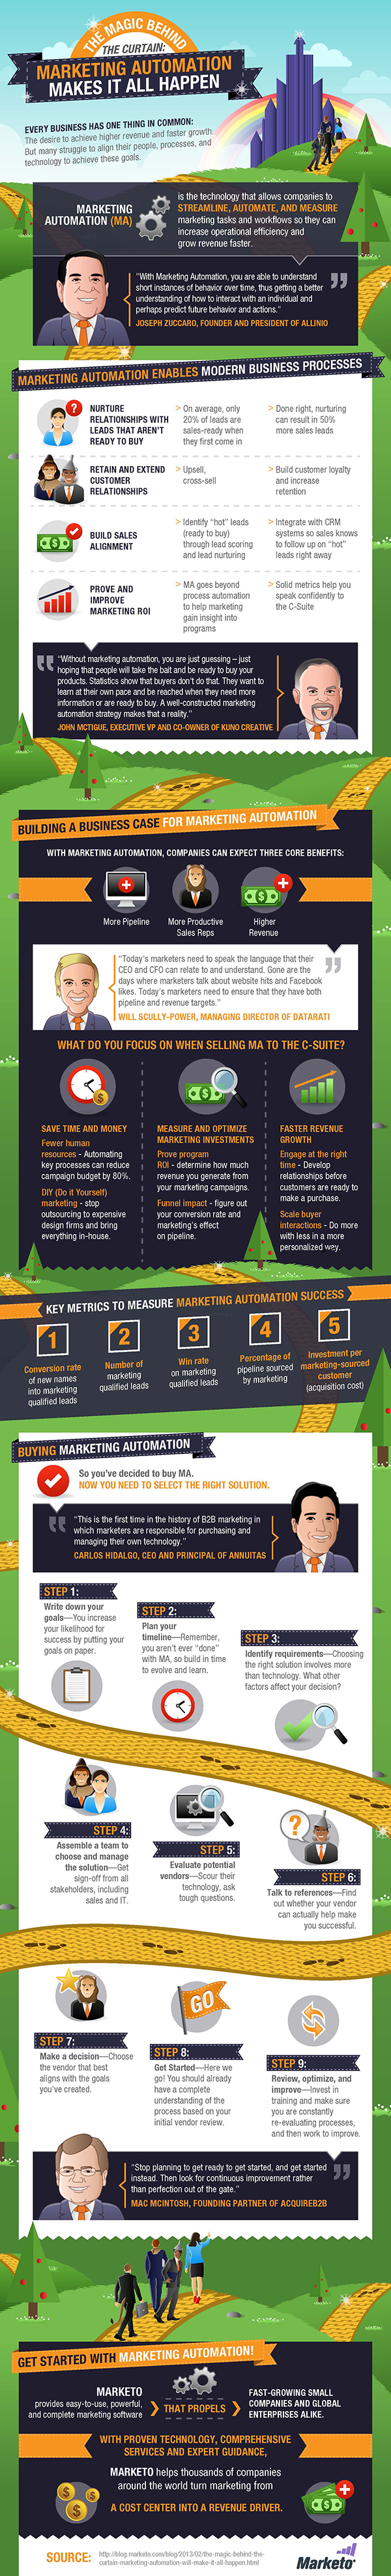 The-Magic-Behind-the-Curtain:-Marketing-Automation-Makes-it-All-Happen-Infographic